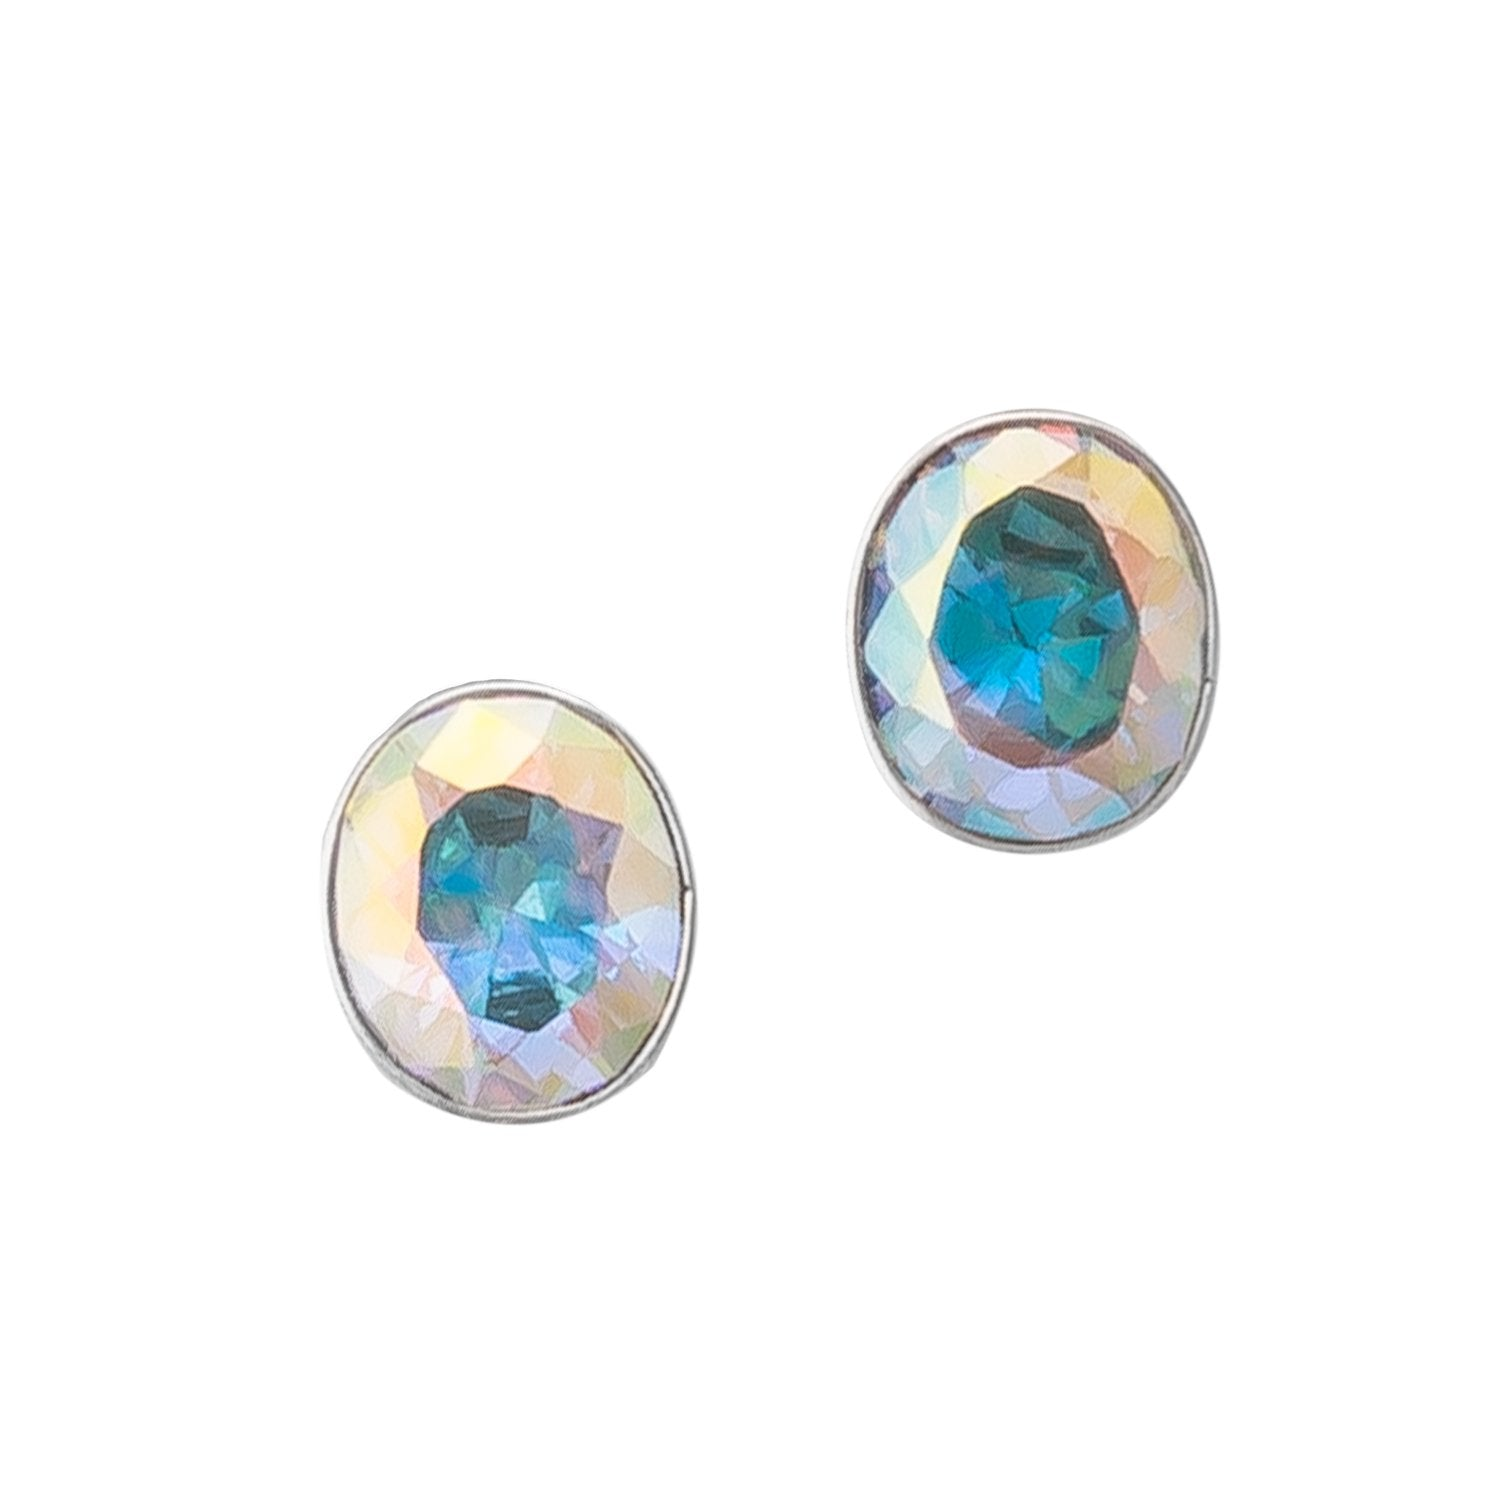 sterling-silver-mercury-mist-cz-clip-earrings - 1 - Charles Albert Inc